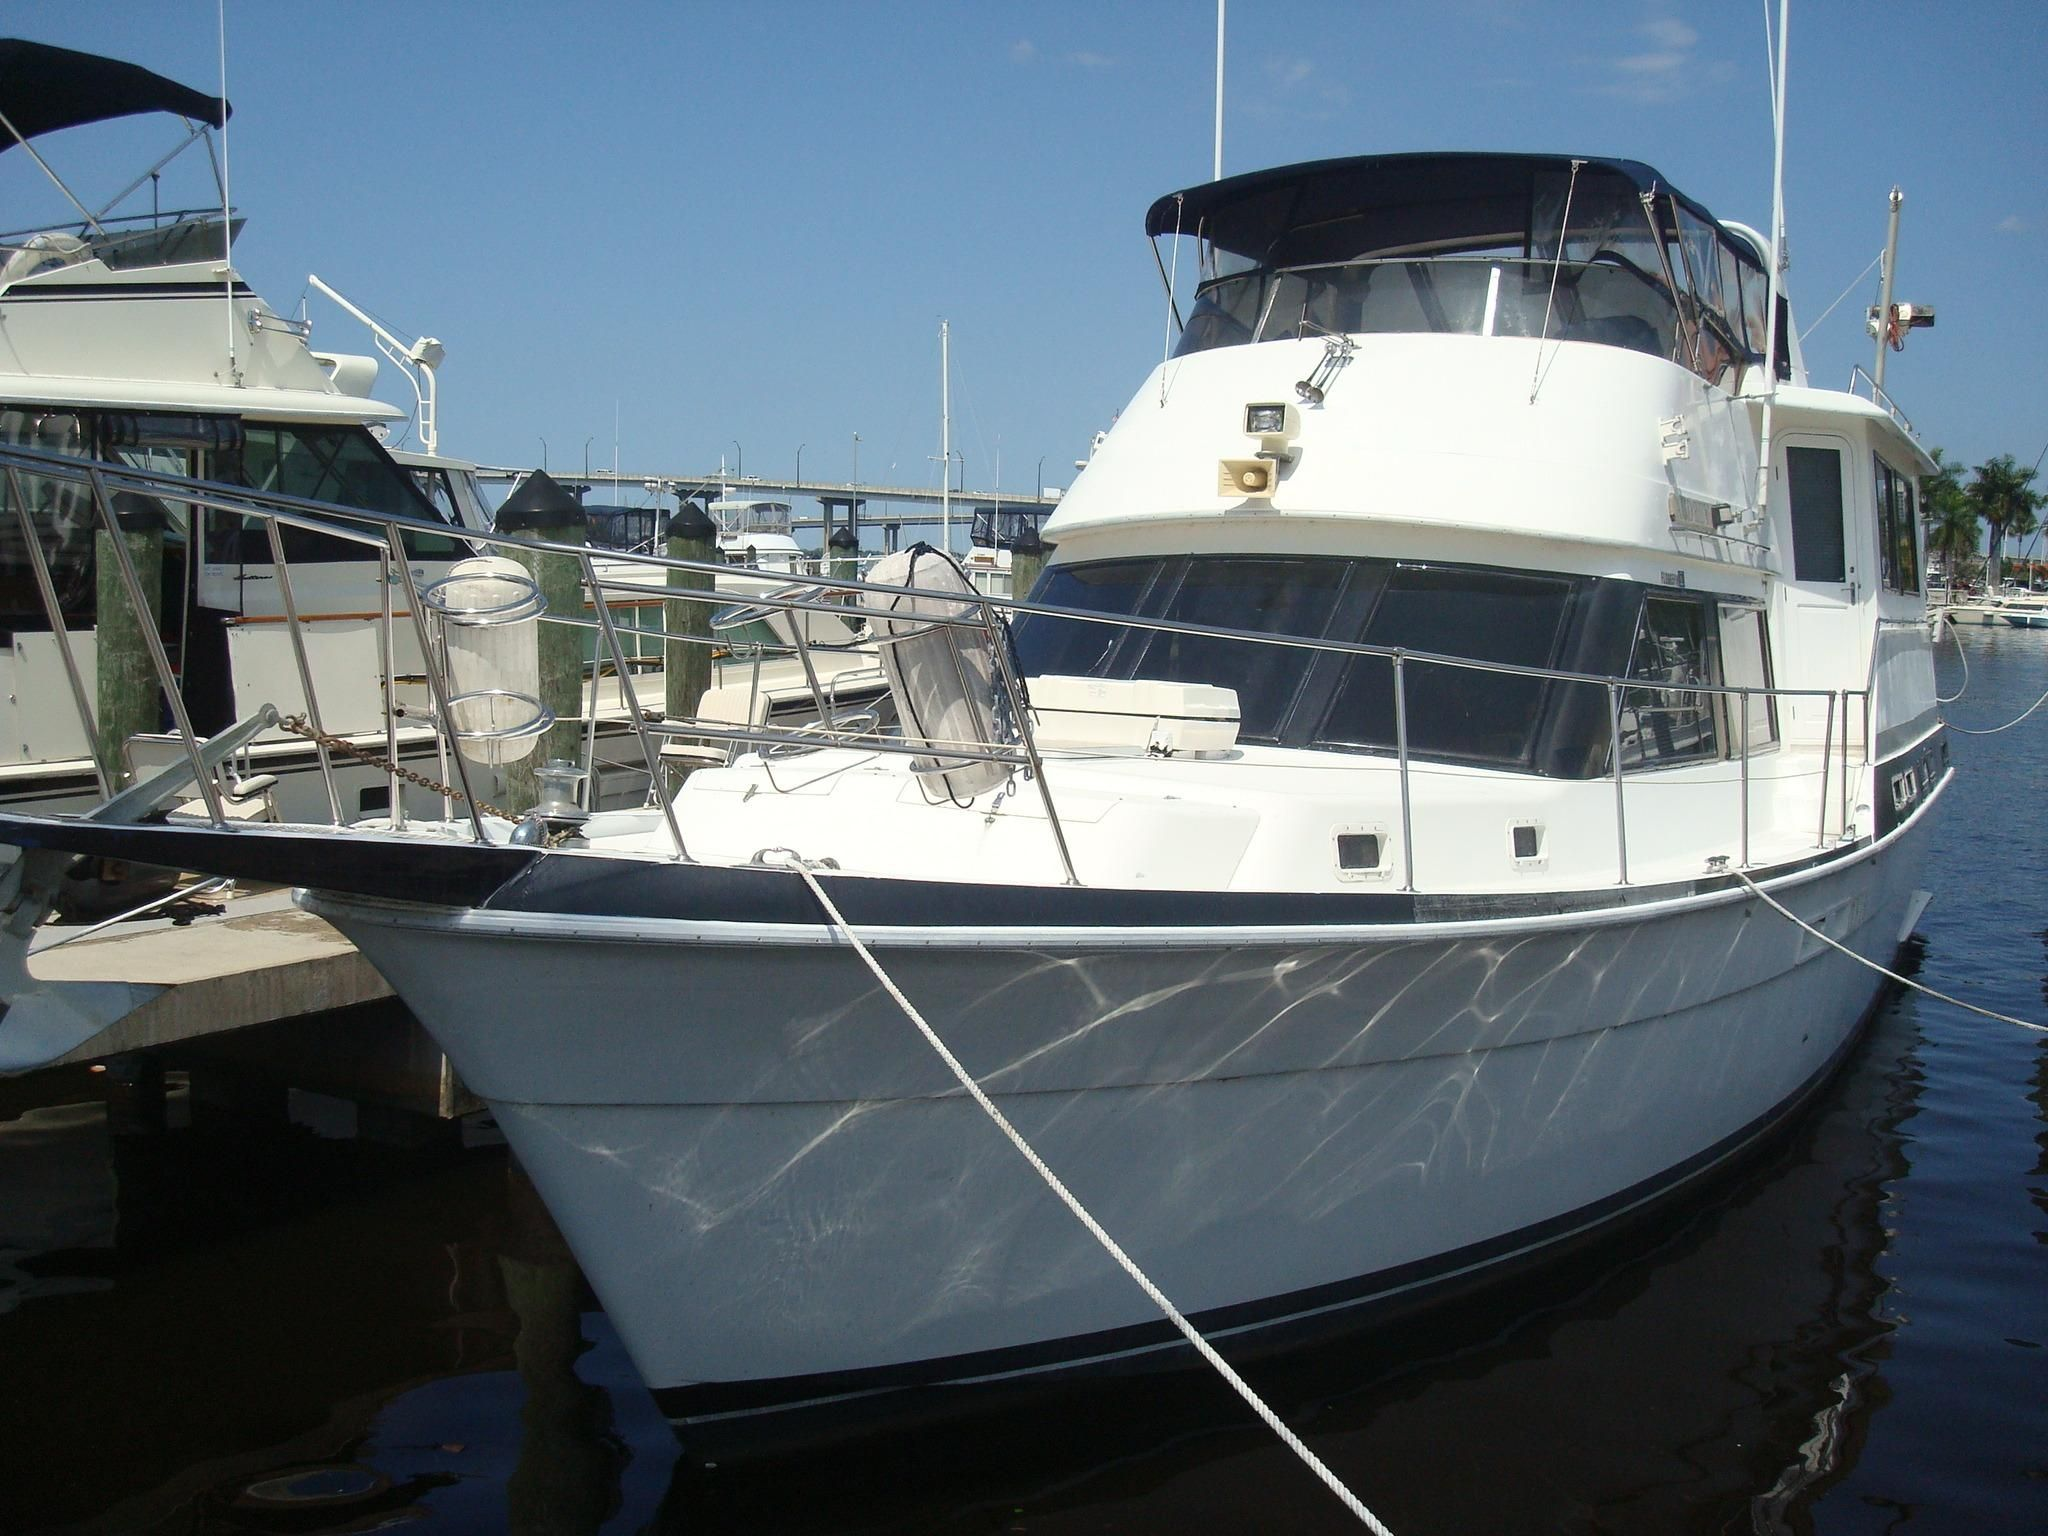 1987 gulfstar 49 motor yacht power boat for sale www for Large motor yachts for sale